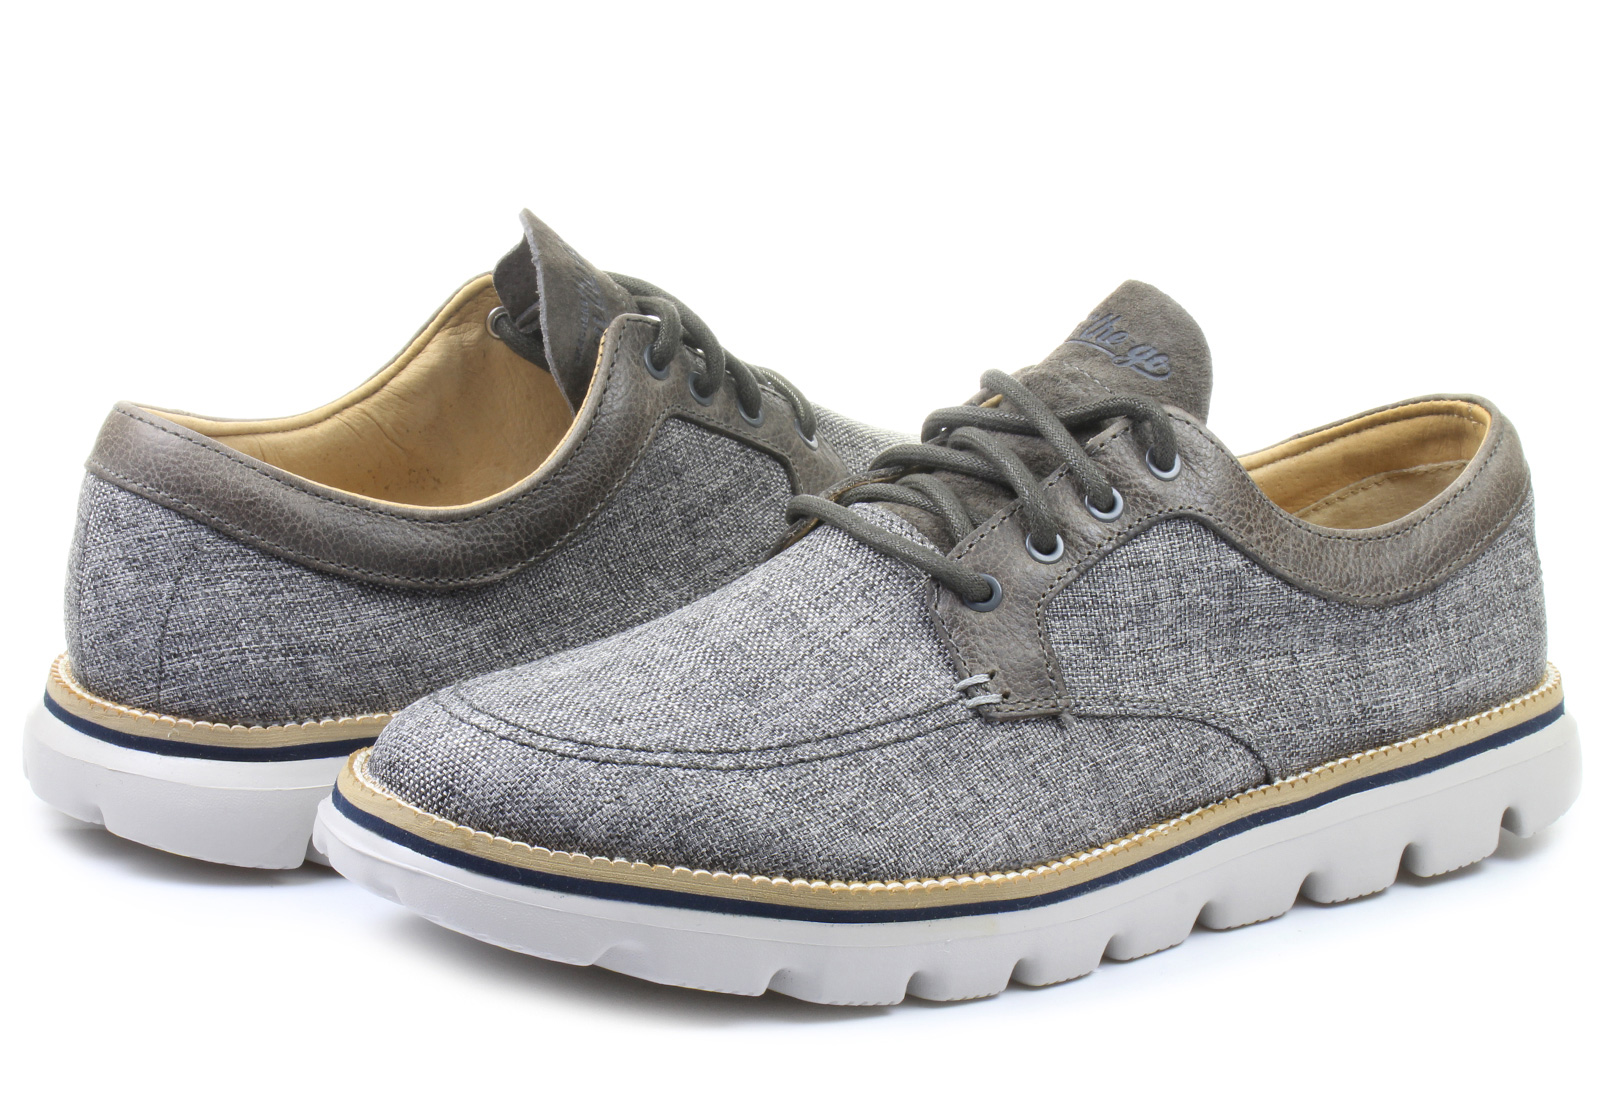 Great for the entire family, SKECHERS has a wide range of casual shoes for men and women, sturdy and stylish kids' shoes that the little ones want to wear, Location: El Camino Real, Santa Clara,